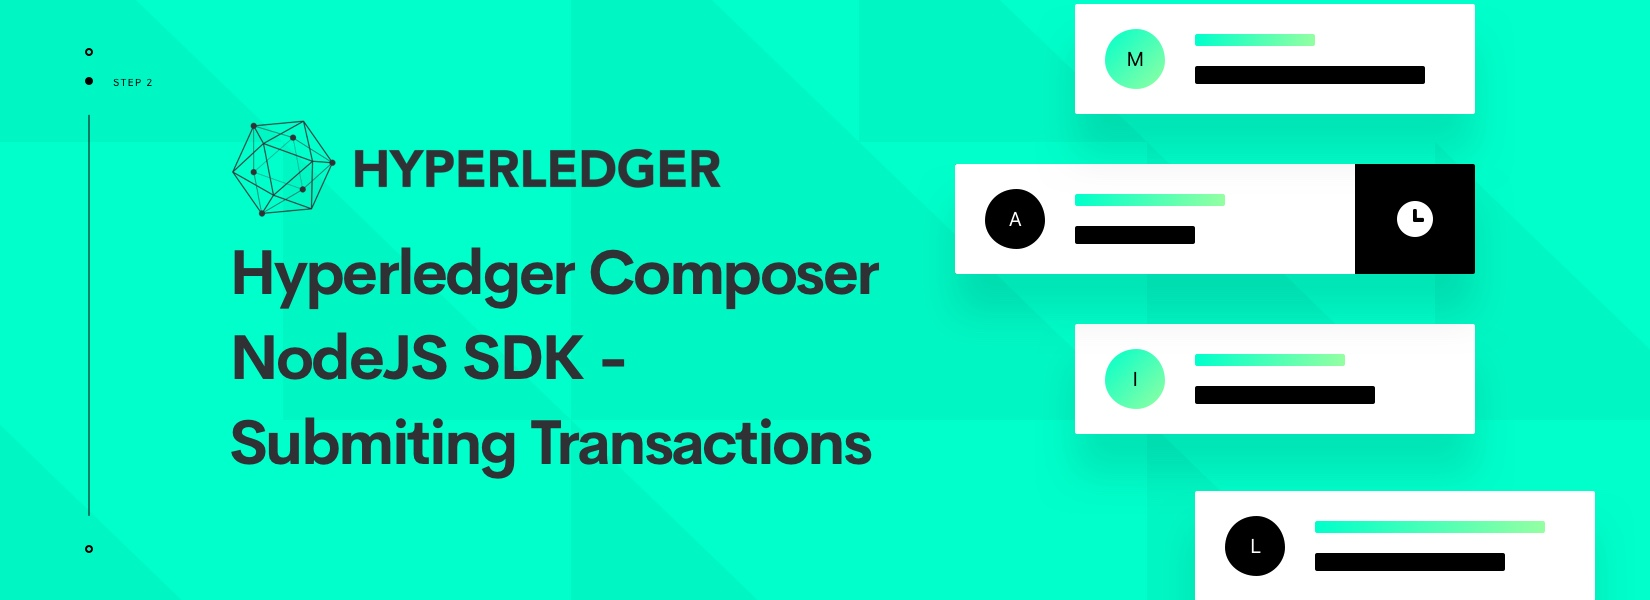 Hyperledger Composer NodeJS SDK - Submiting Transactions